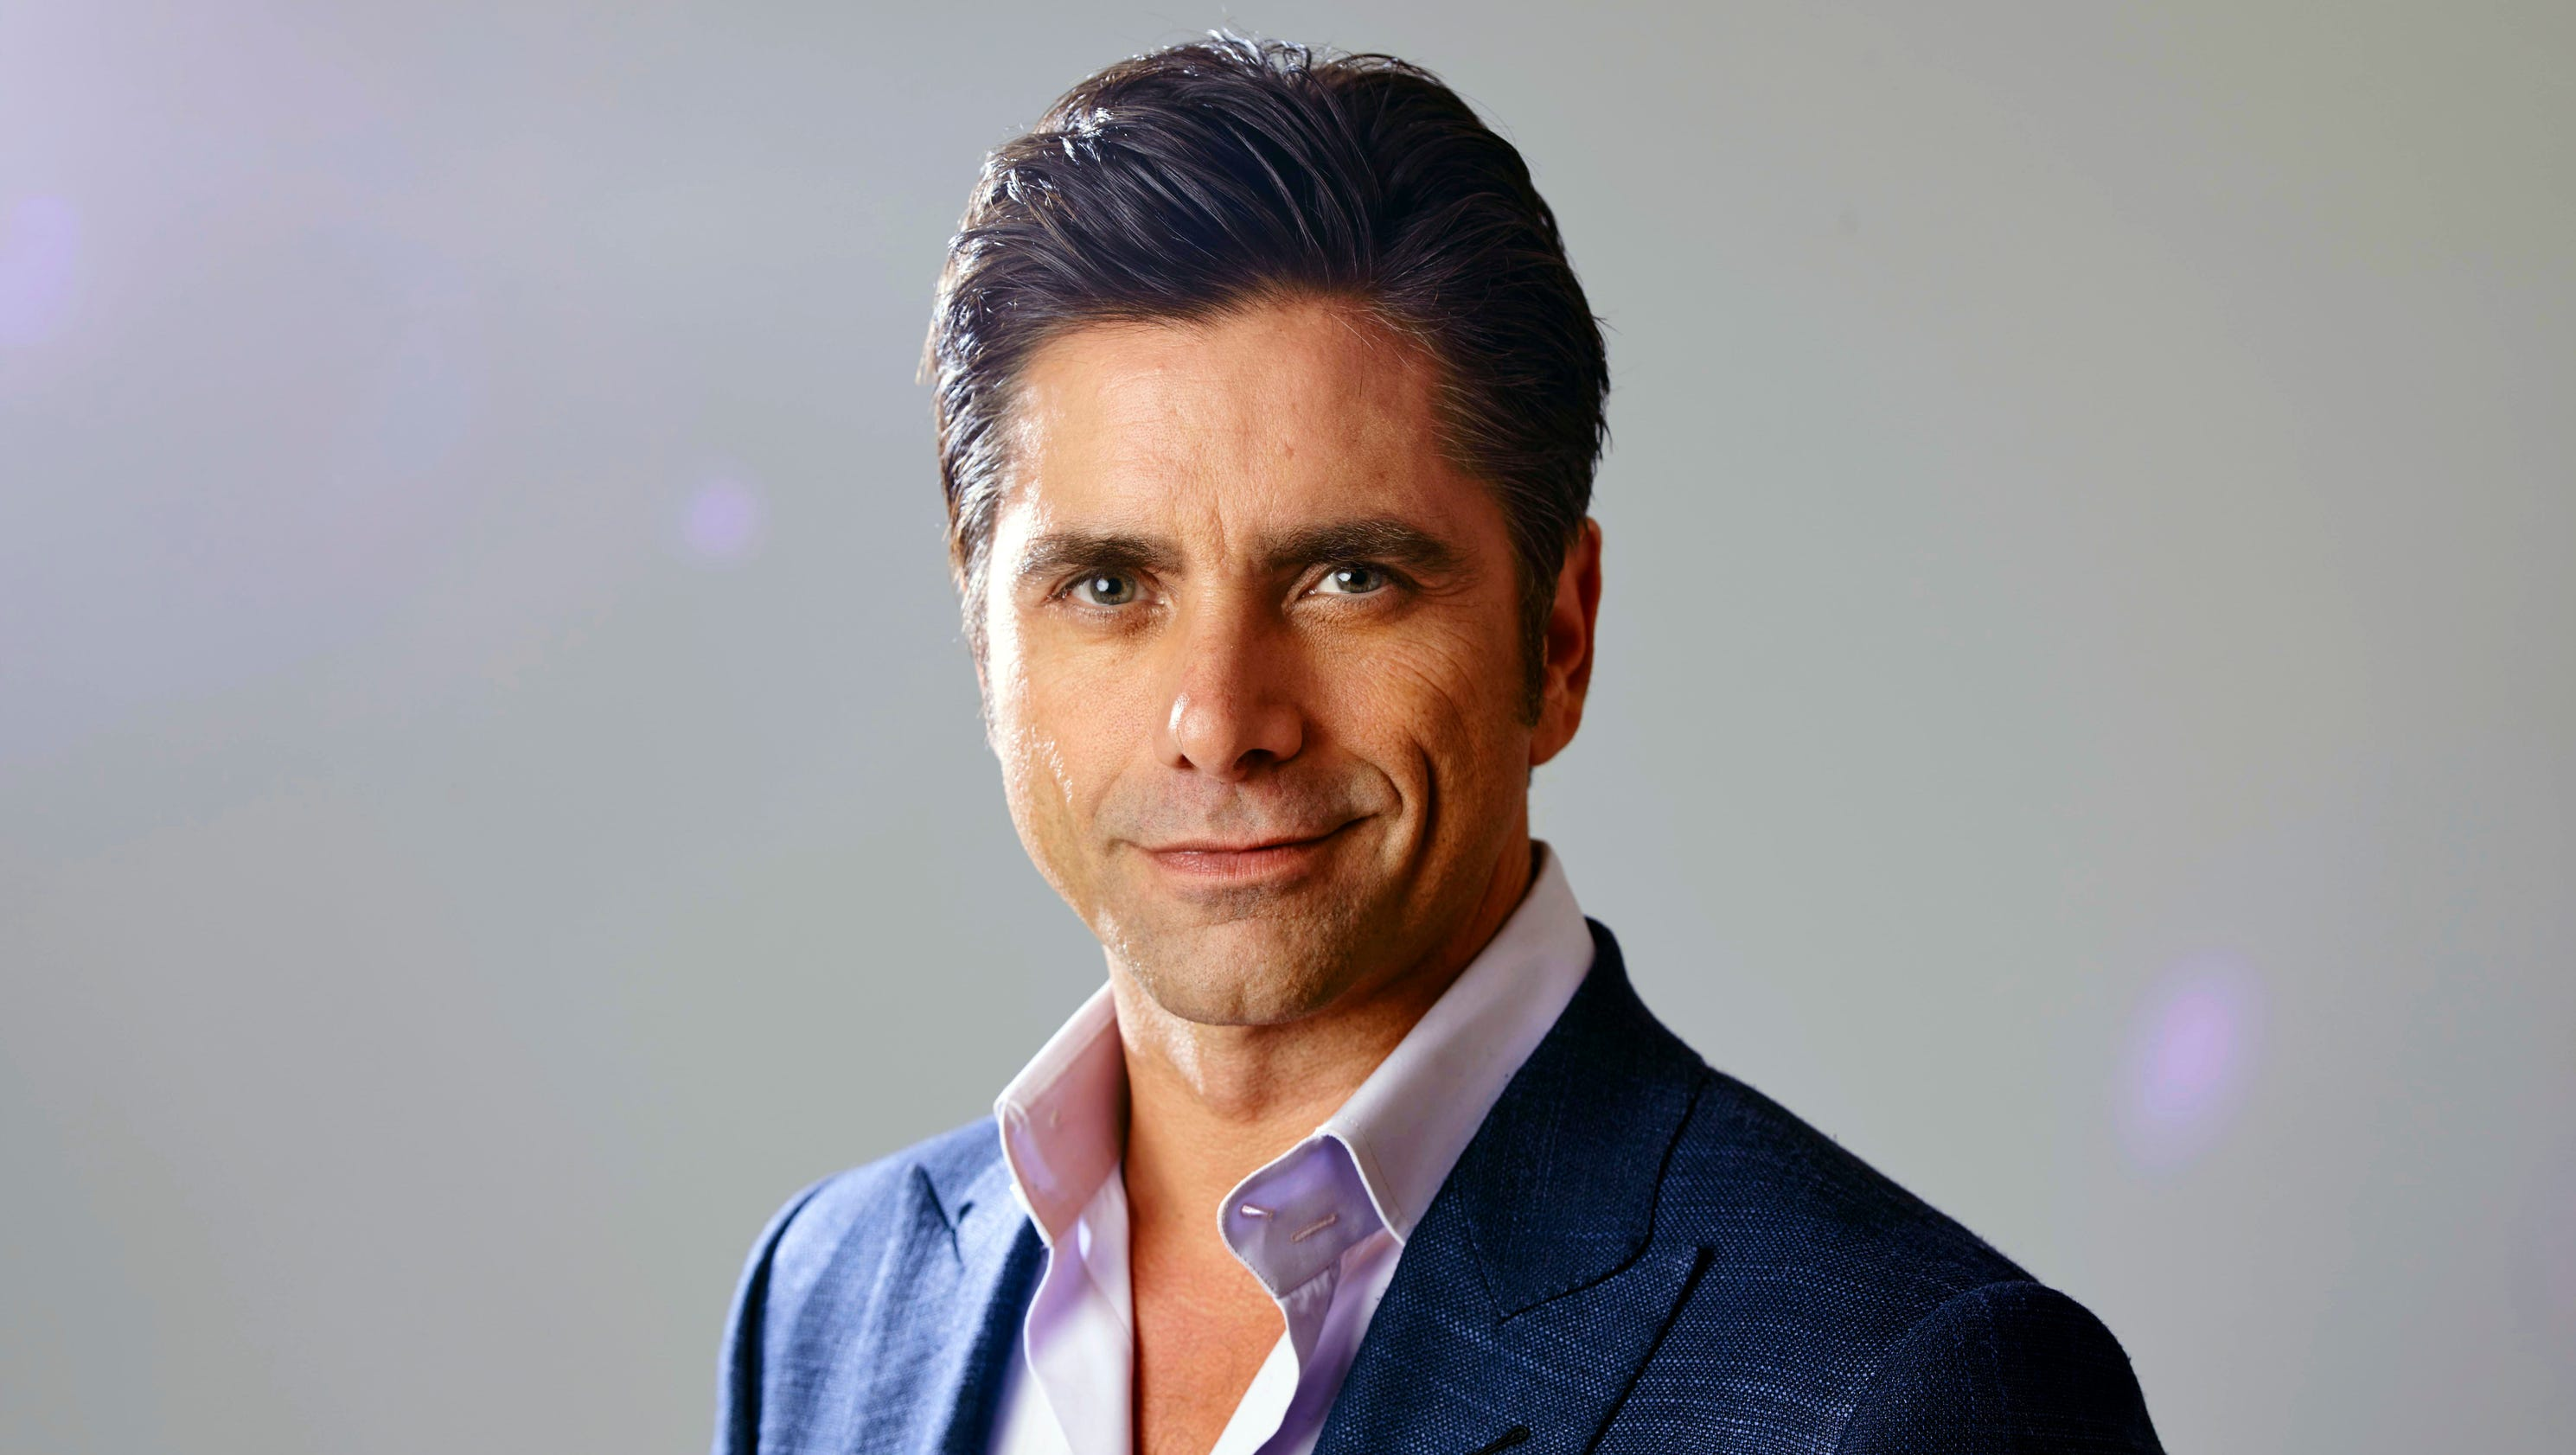 John Stamos avoids jail in misdemeanor DUI charge